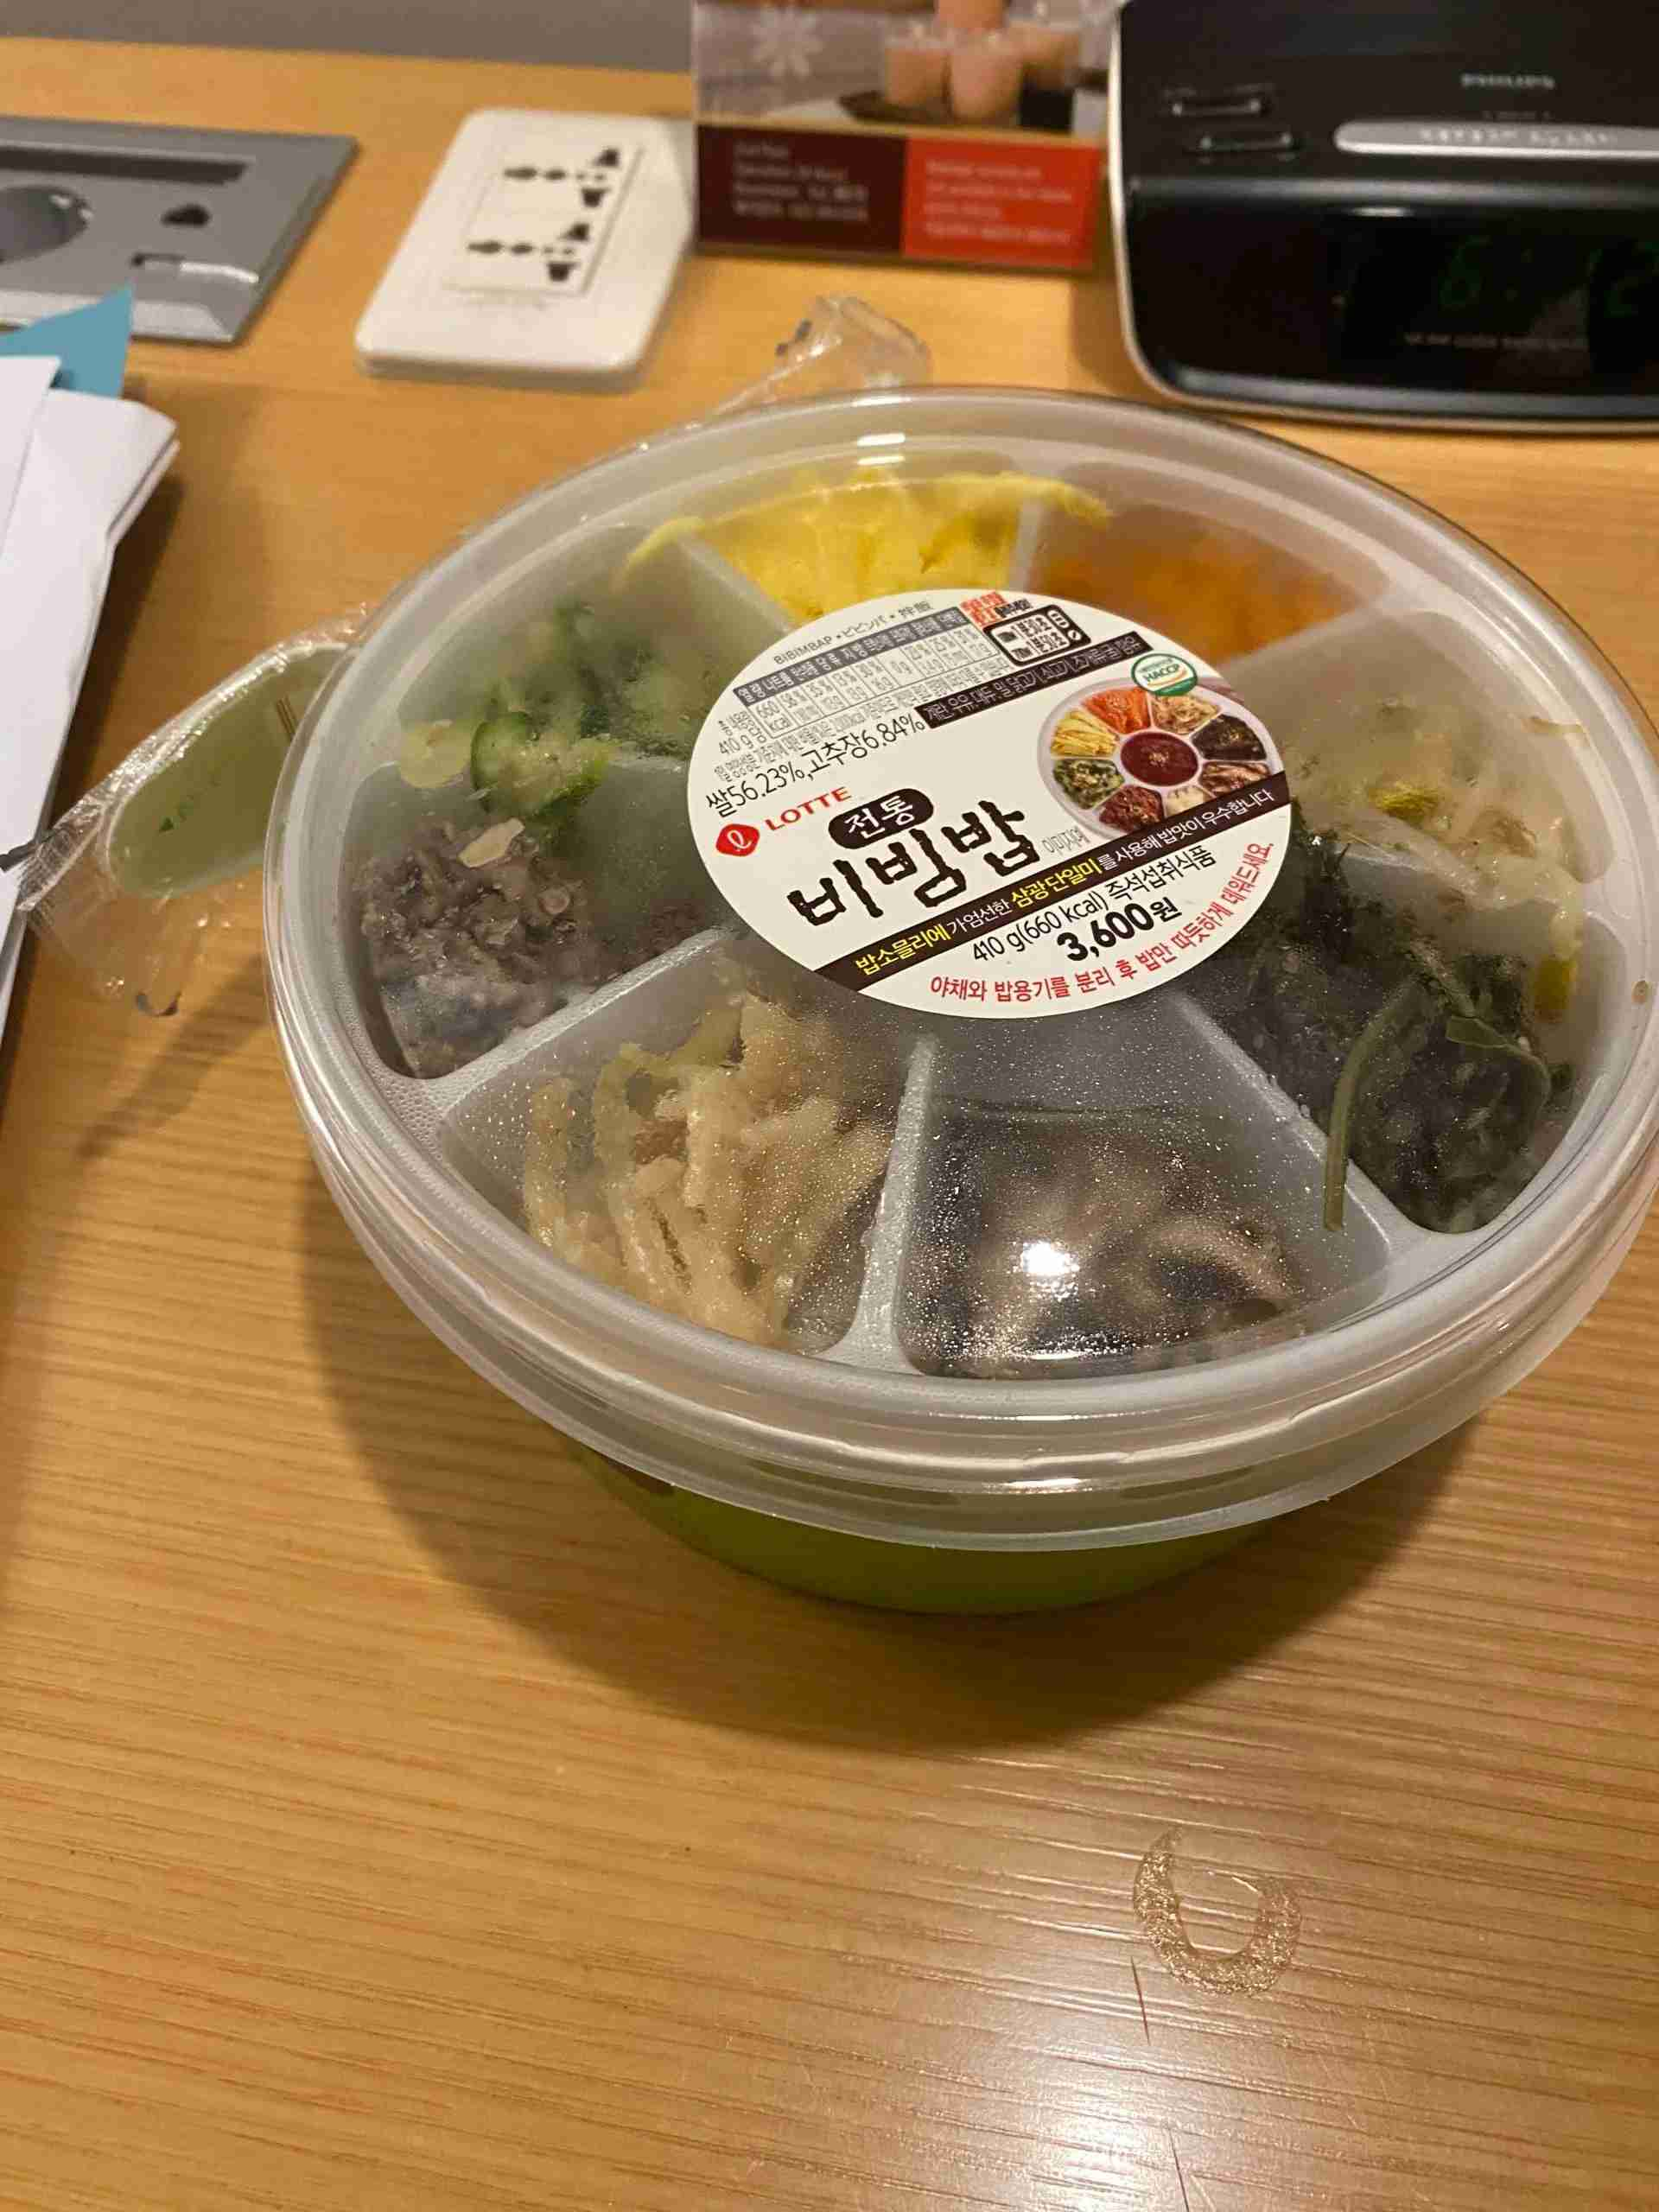 Quarantine meal Bibimbap given during isolation. Photo by Brian Kim / The Points Guy